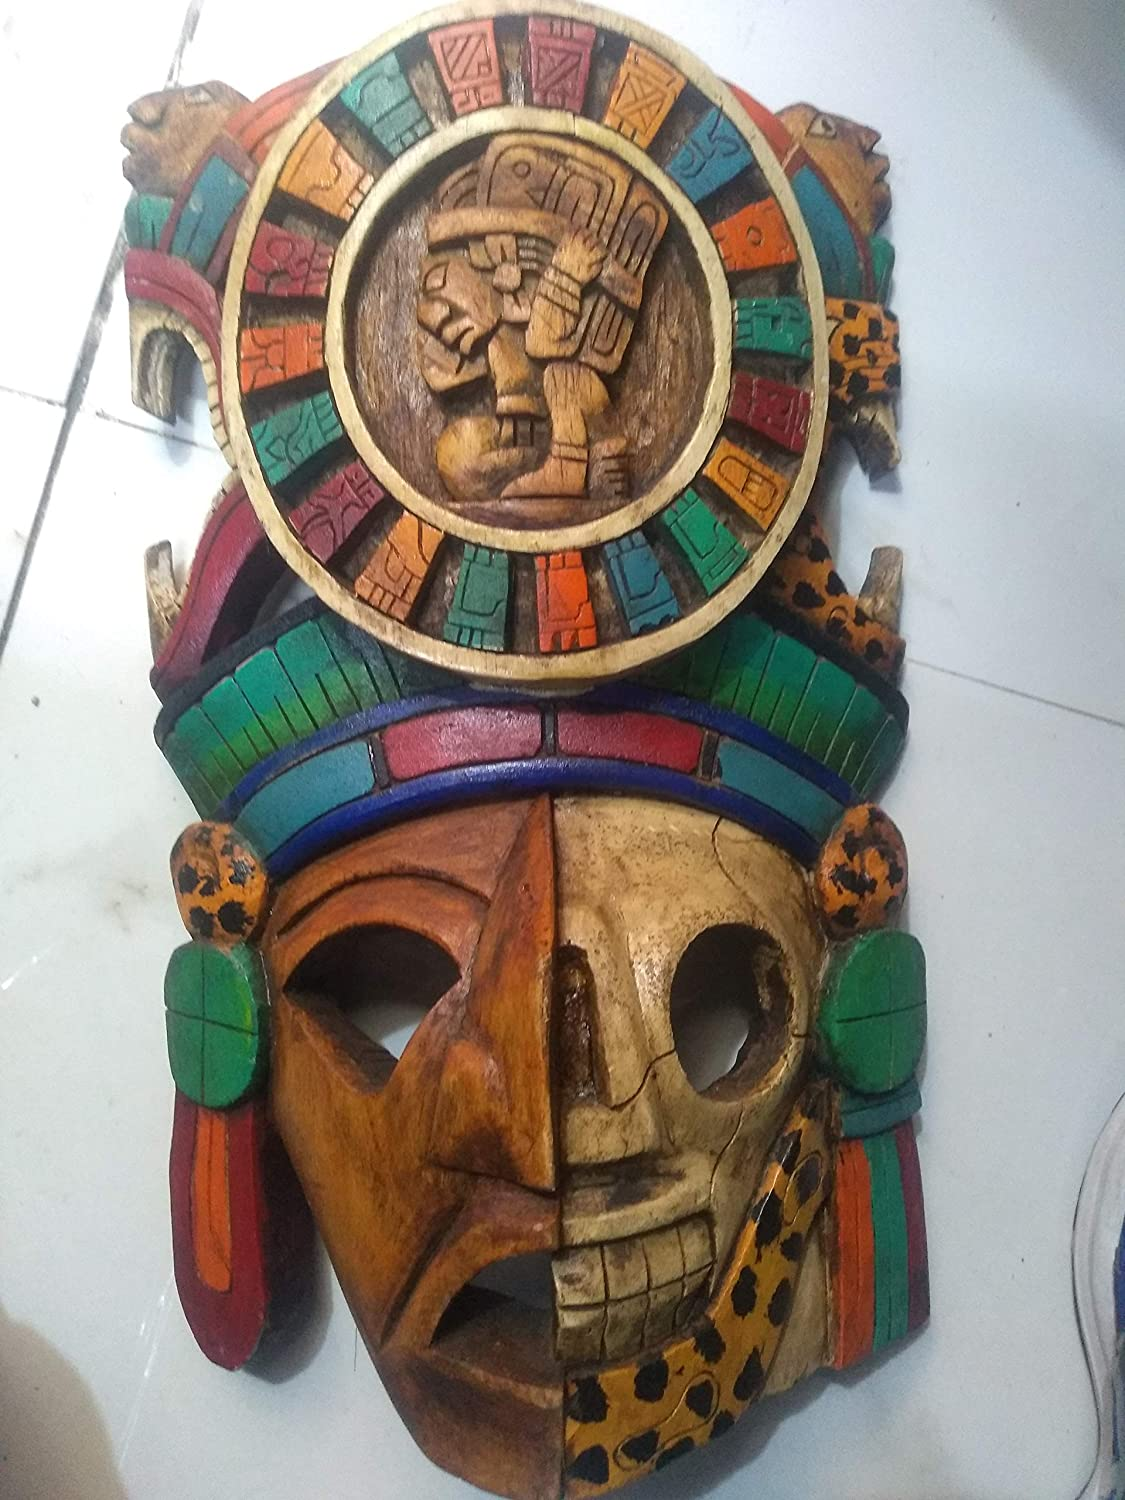 Archaeological Mask Large Decorative Wood Mayan Warrior Unique Piece Unique Sculpture Worked By Hand In Wood Handmade